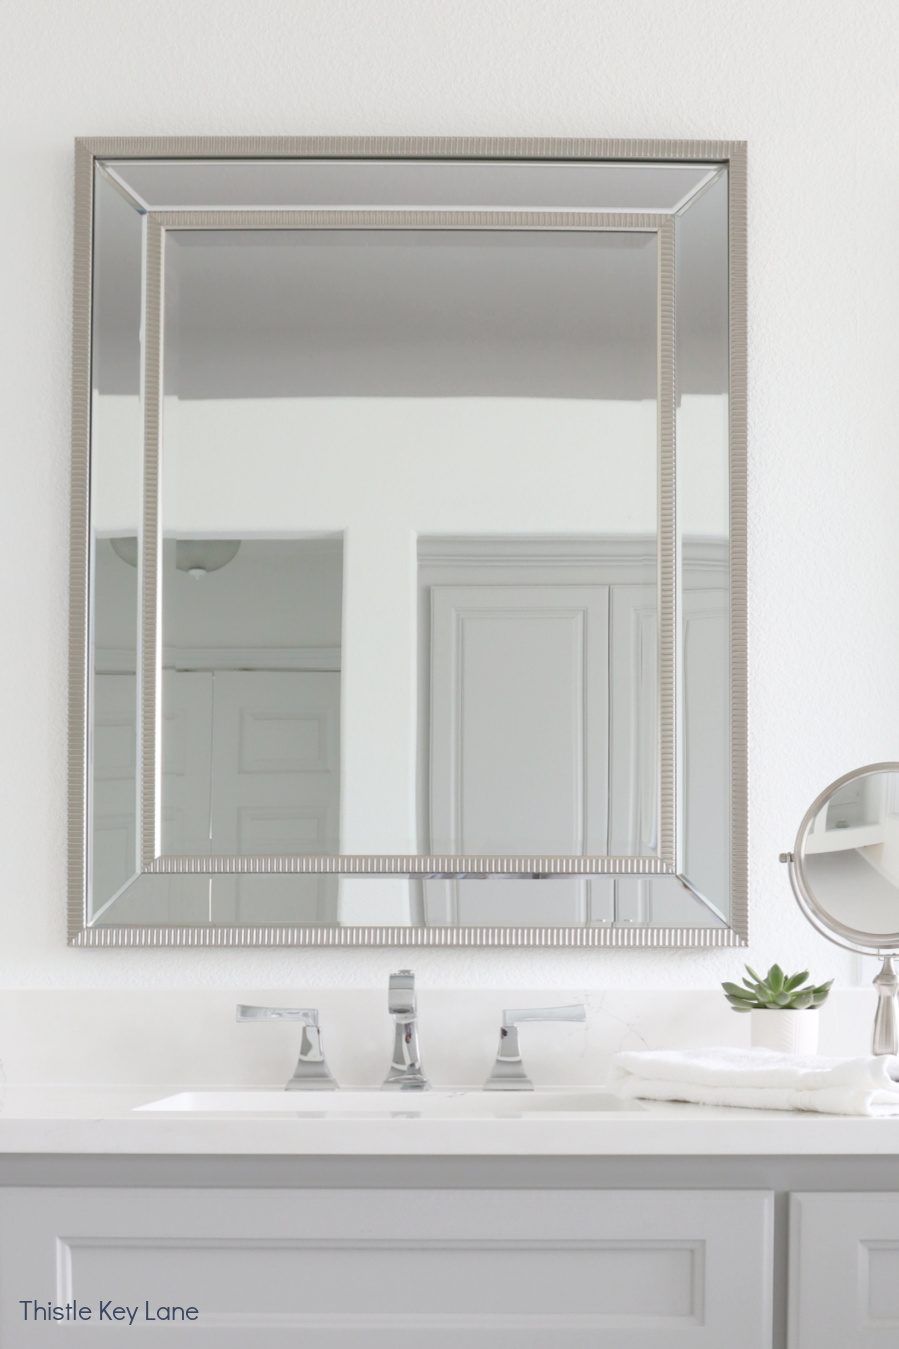 Brush finish mirror and sink. White And Gray Bathroom Makeover.